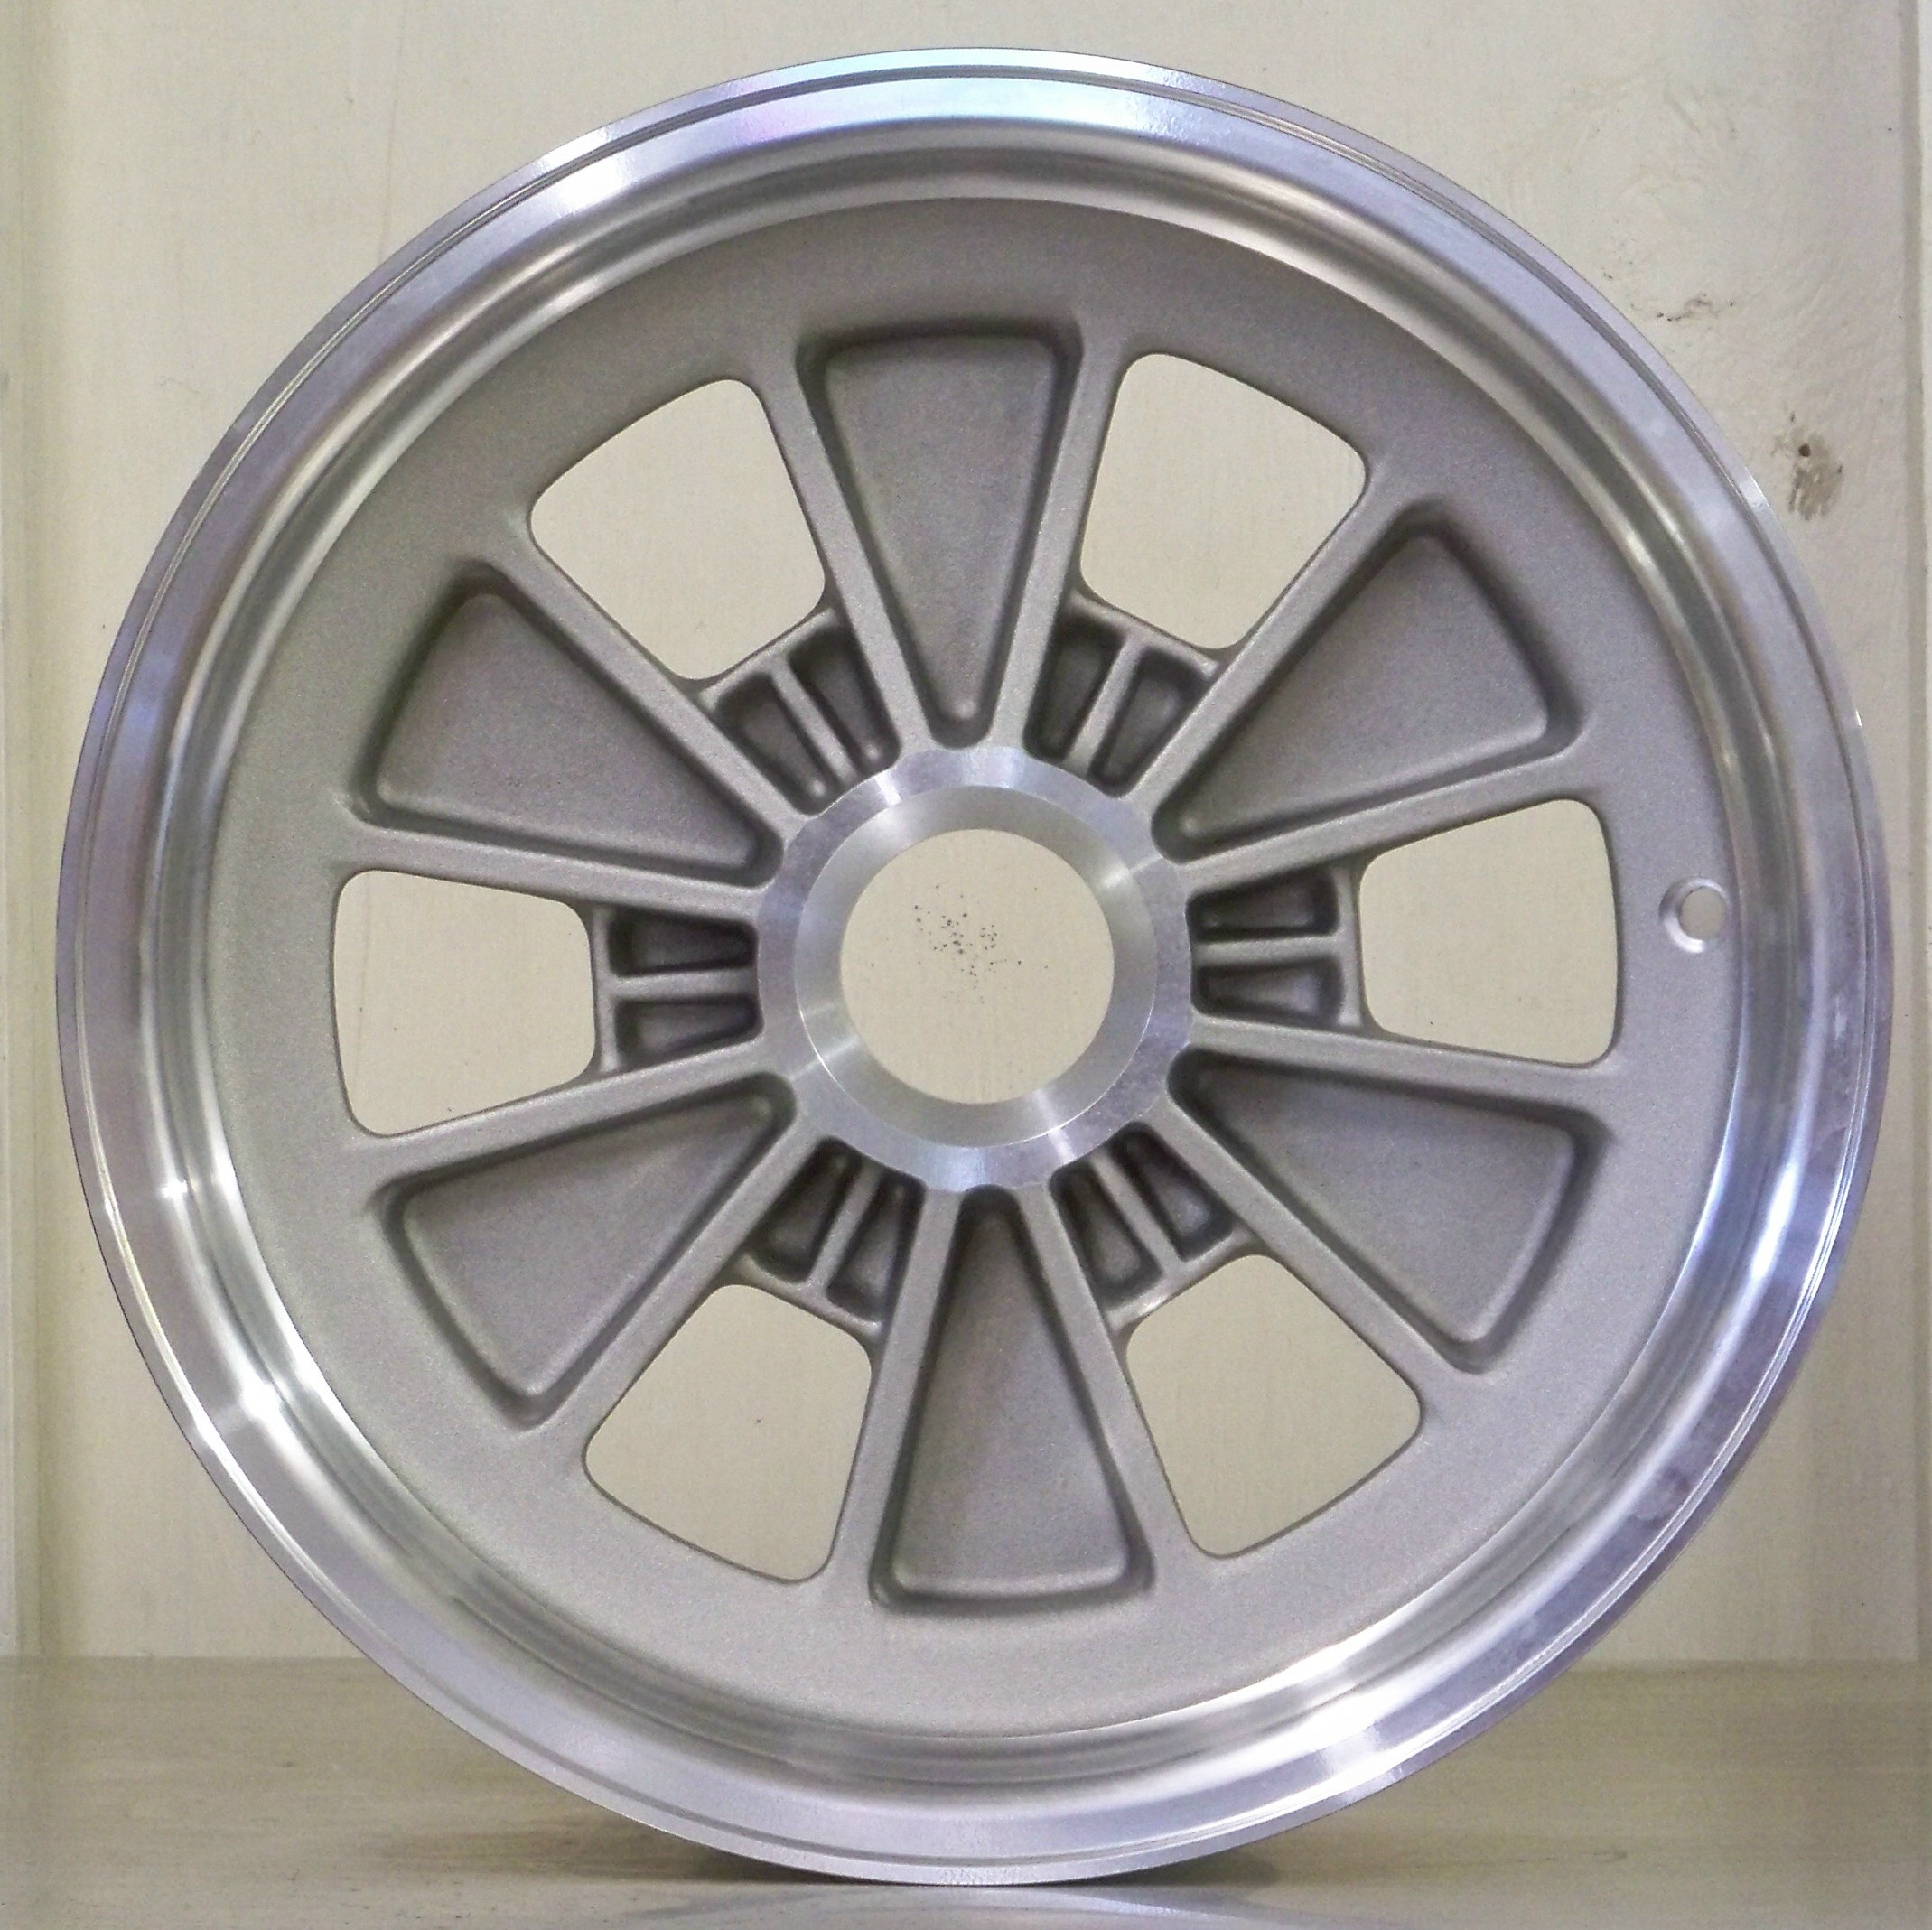 FA 15 SET OF 4 WHEELS 6 PIN